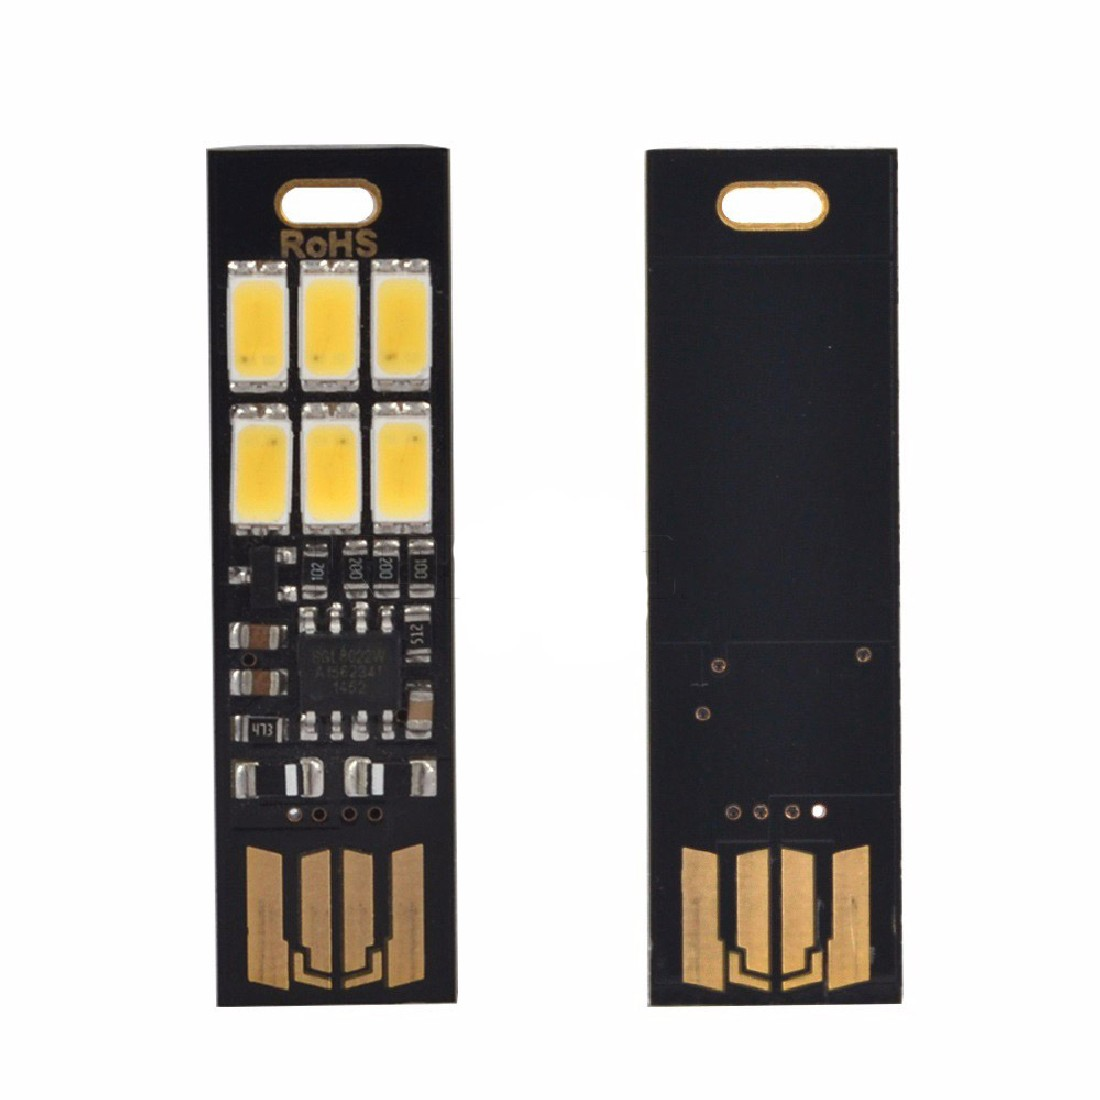 Hot Night Lamp Mini Pocket Card USB Power 6 LED Keychain Night Lights Touch Dimmer Warm Light For Power Bank Computer Laptop